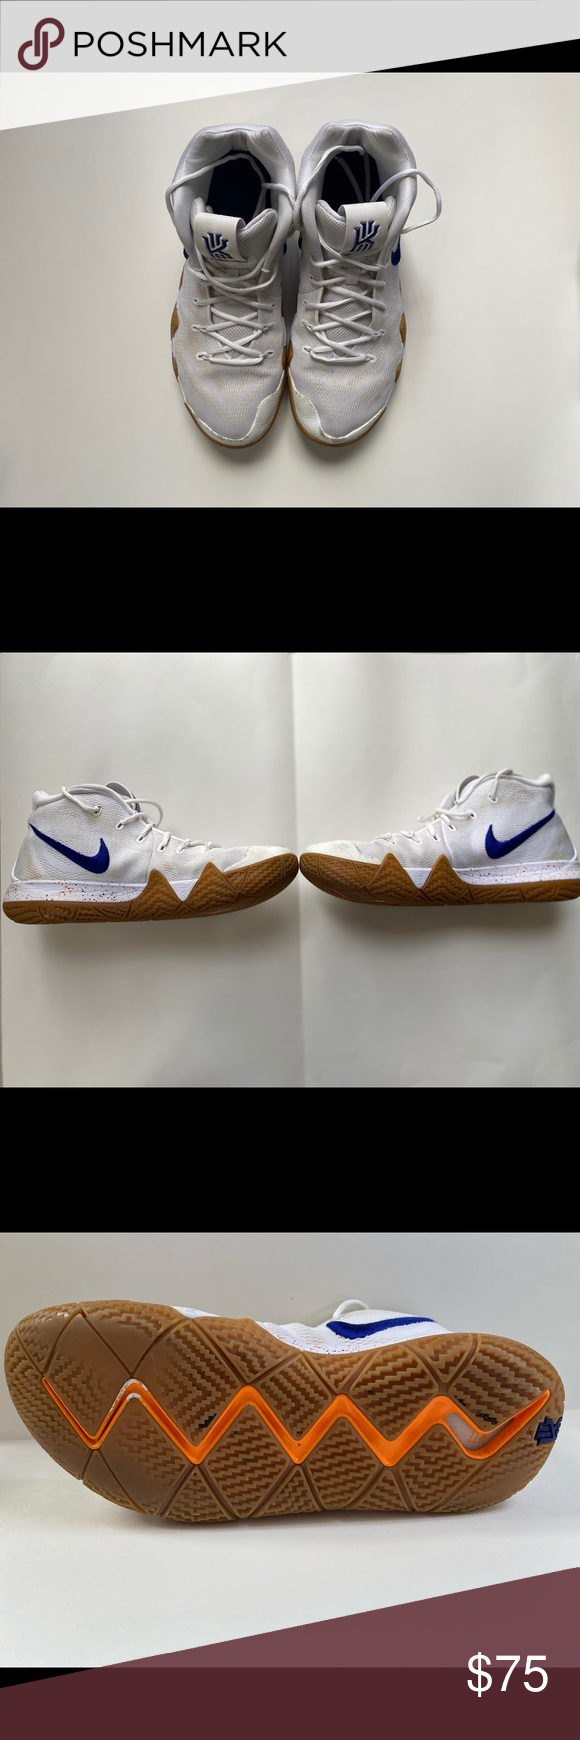 kyrie 4 uncle drew size 7